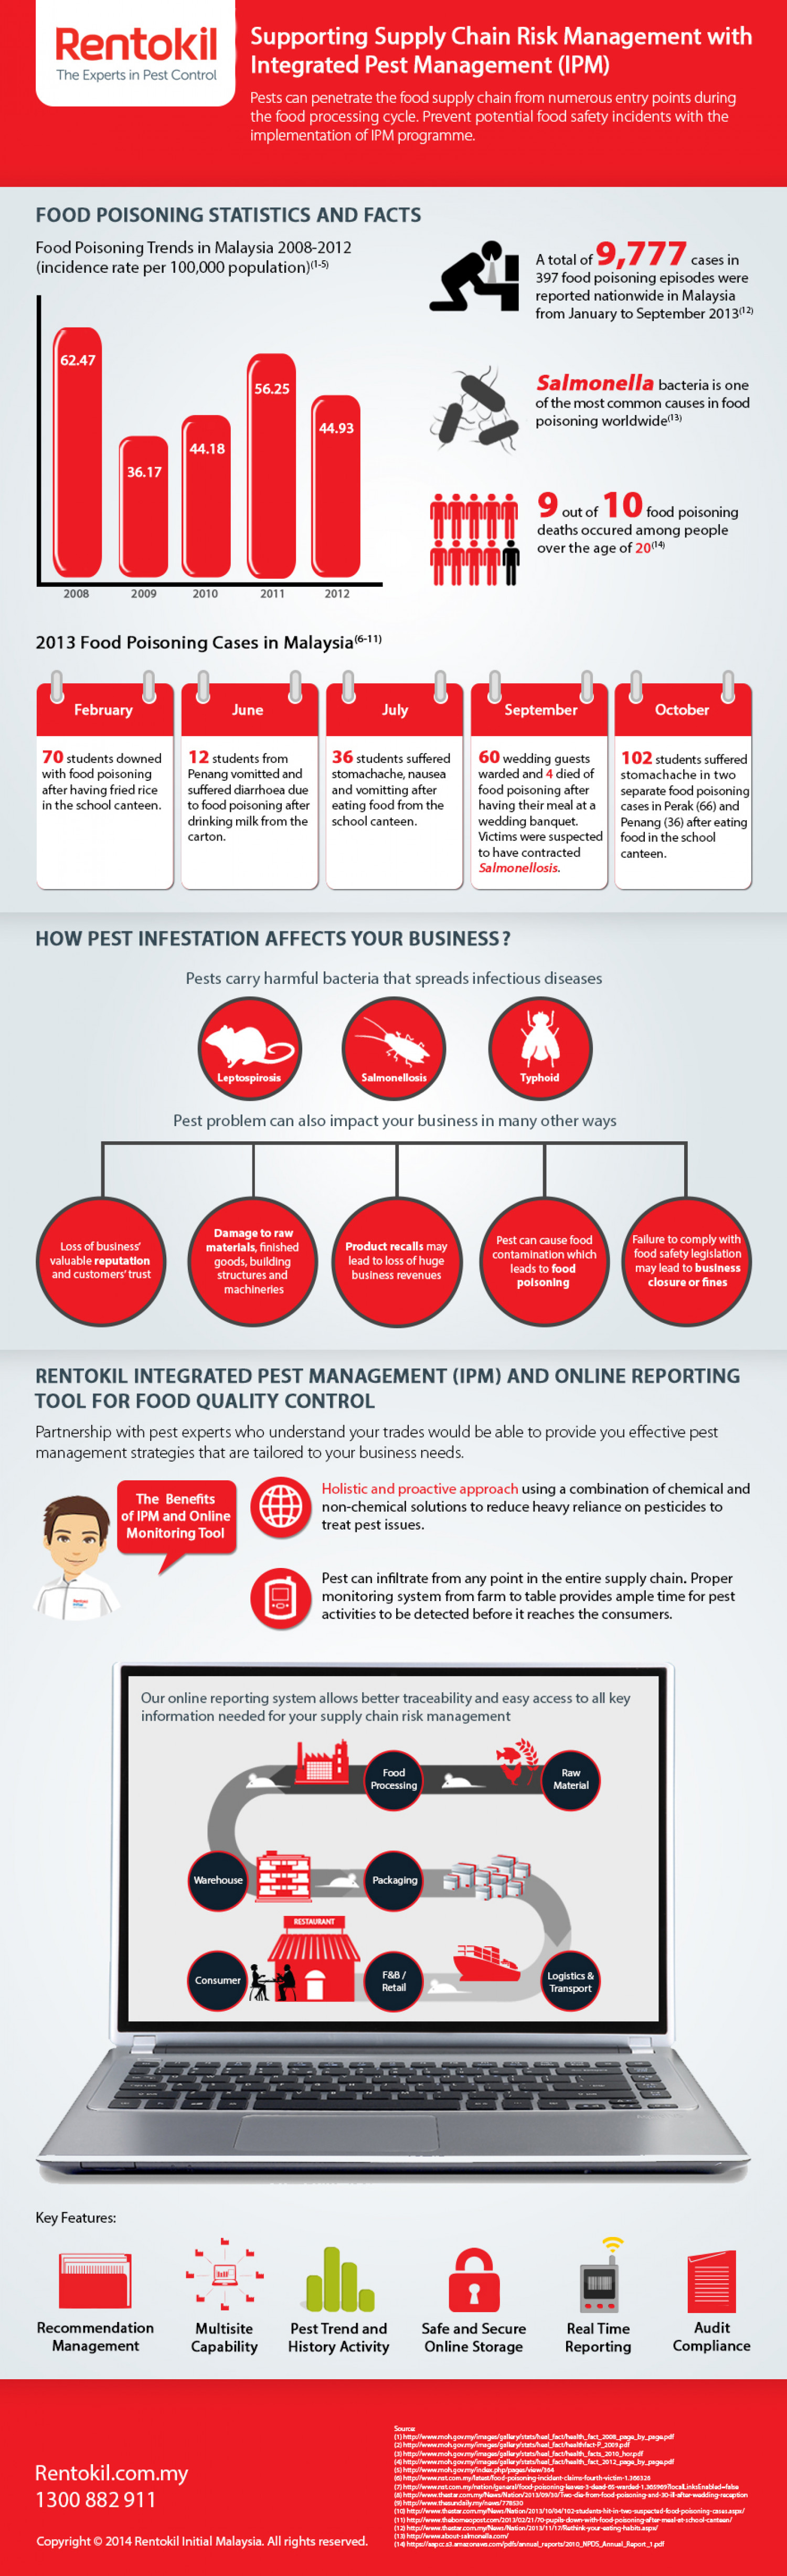 Supporting Supply Chain Risk Management with Integrated Pest Management (IPM) Infographic